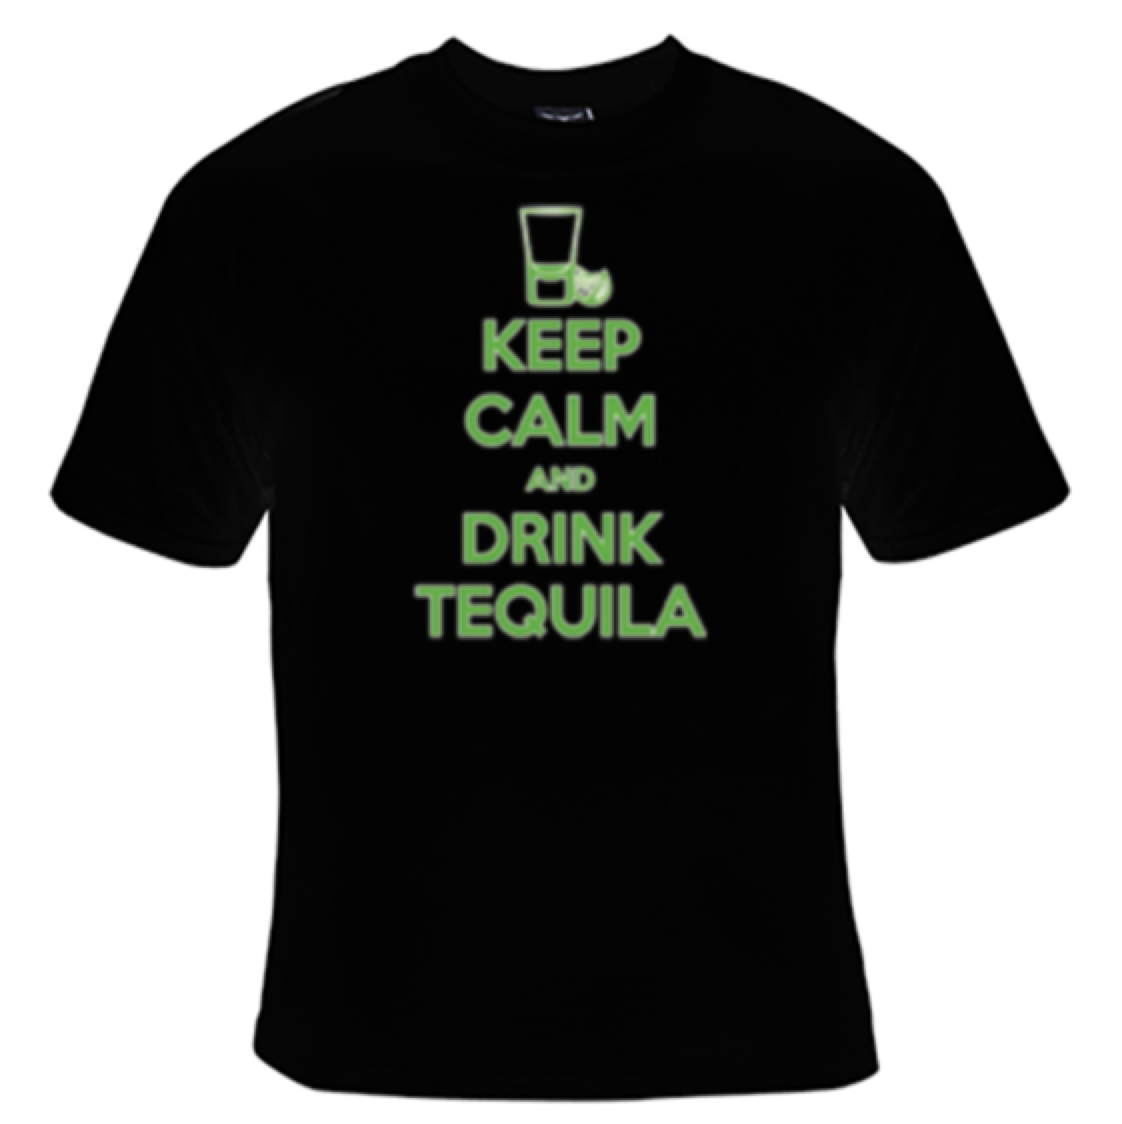 Keep Calm And Drink Tequila T-Shirt Men's - Life Rush Apparel